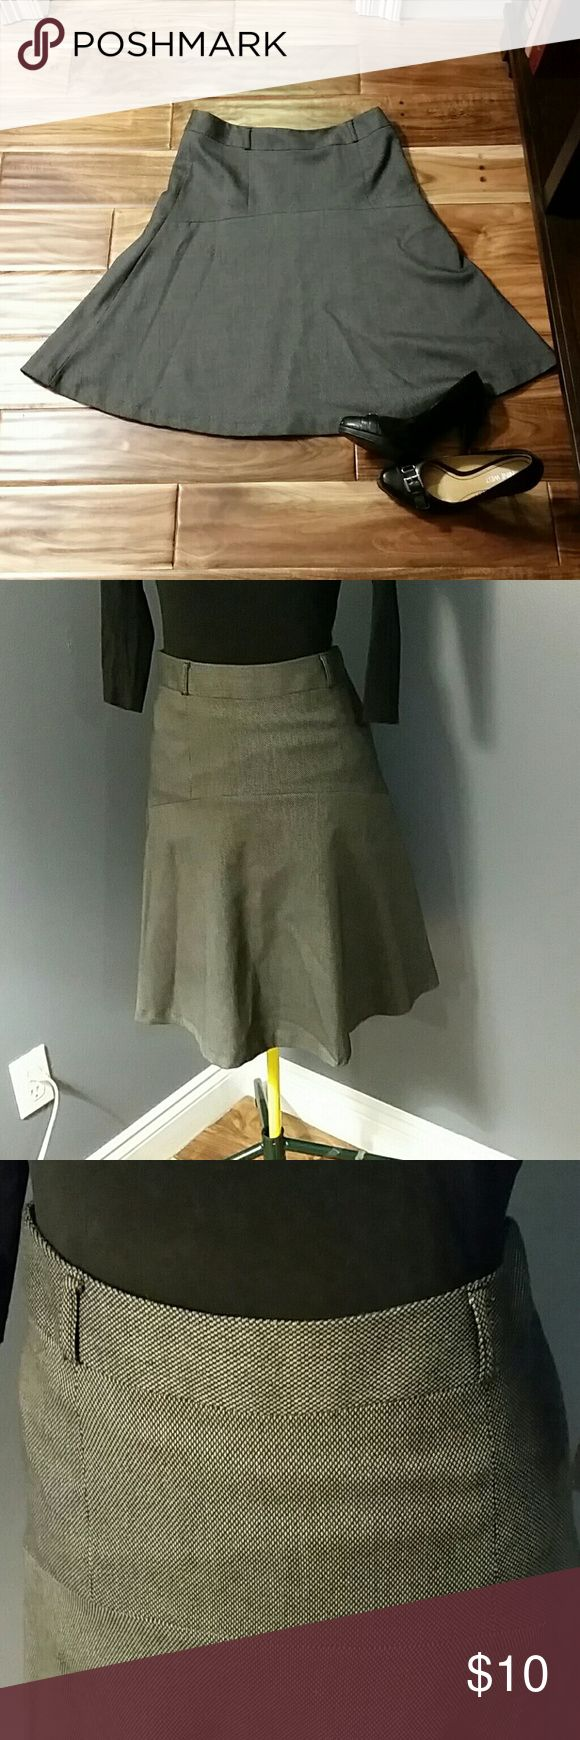 Hanna & Gracie Wear to Work Circle Skirt Grey Sz 6 This Hanna & Gracie circle skirt is knee length and perfect for work. It appears to be grey, because black and white threads are woven in this thick material. Worn only a few times. Size 6. All offers considered. Hanna & Gracie Skirts Circle & Skater